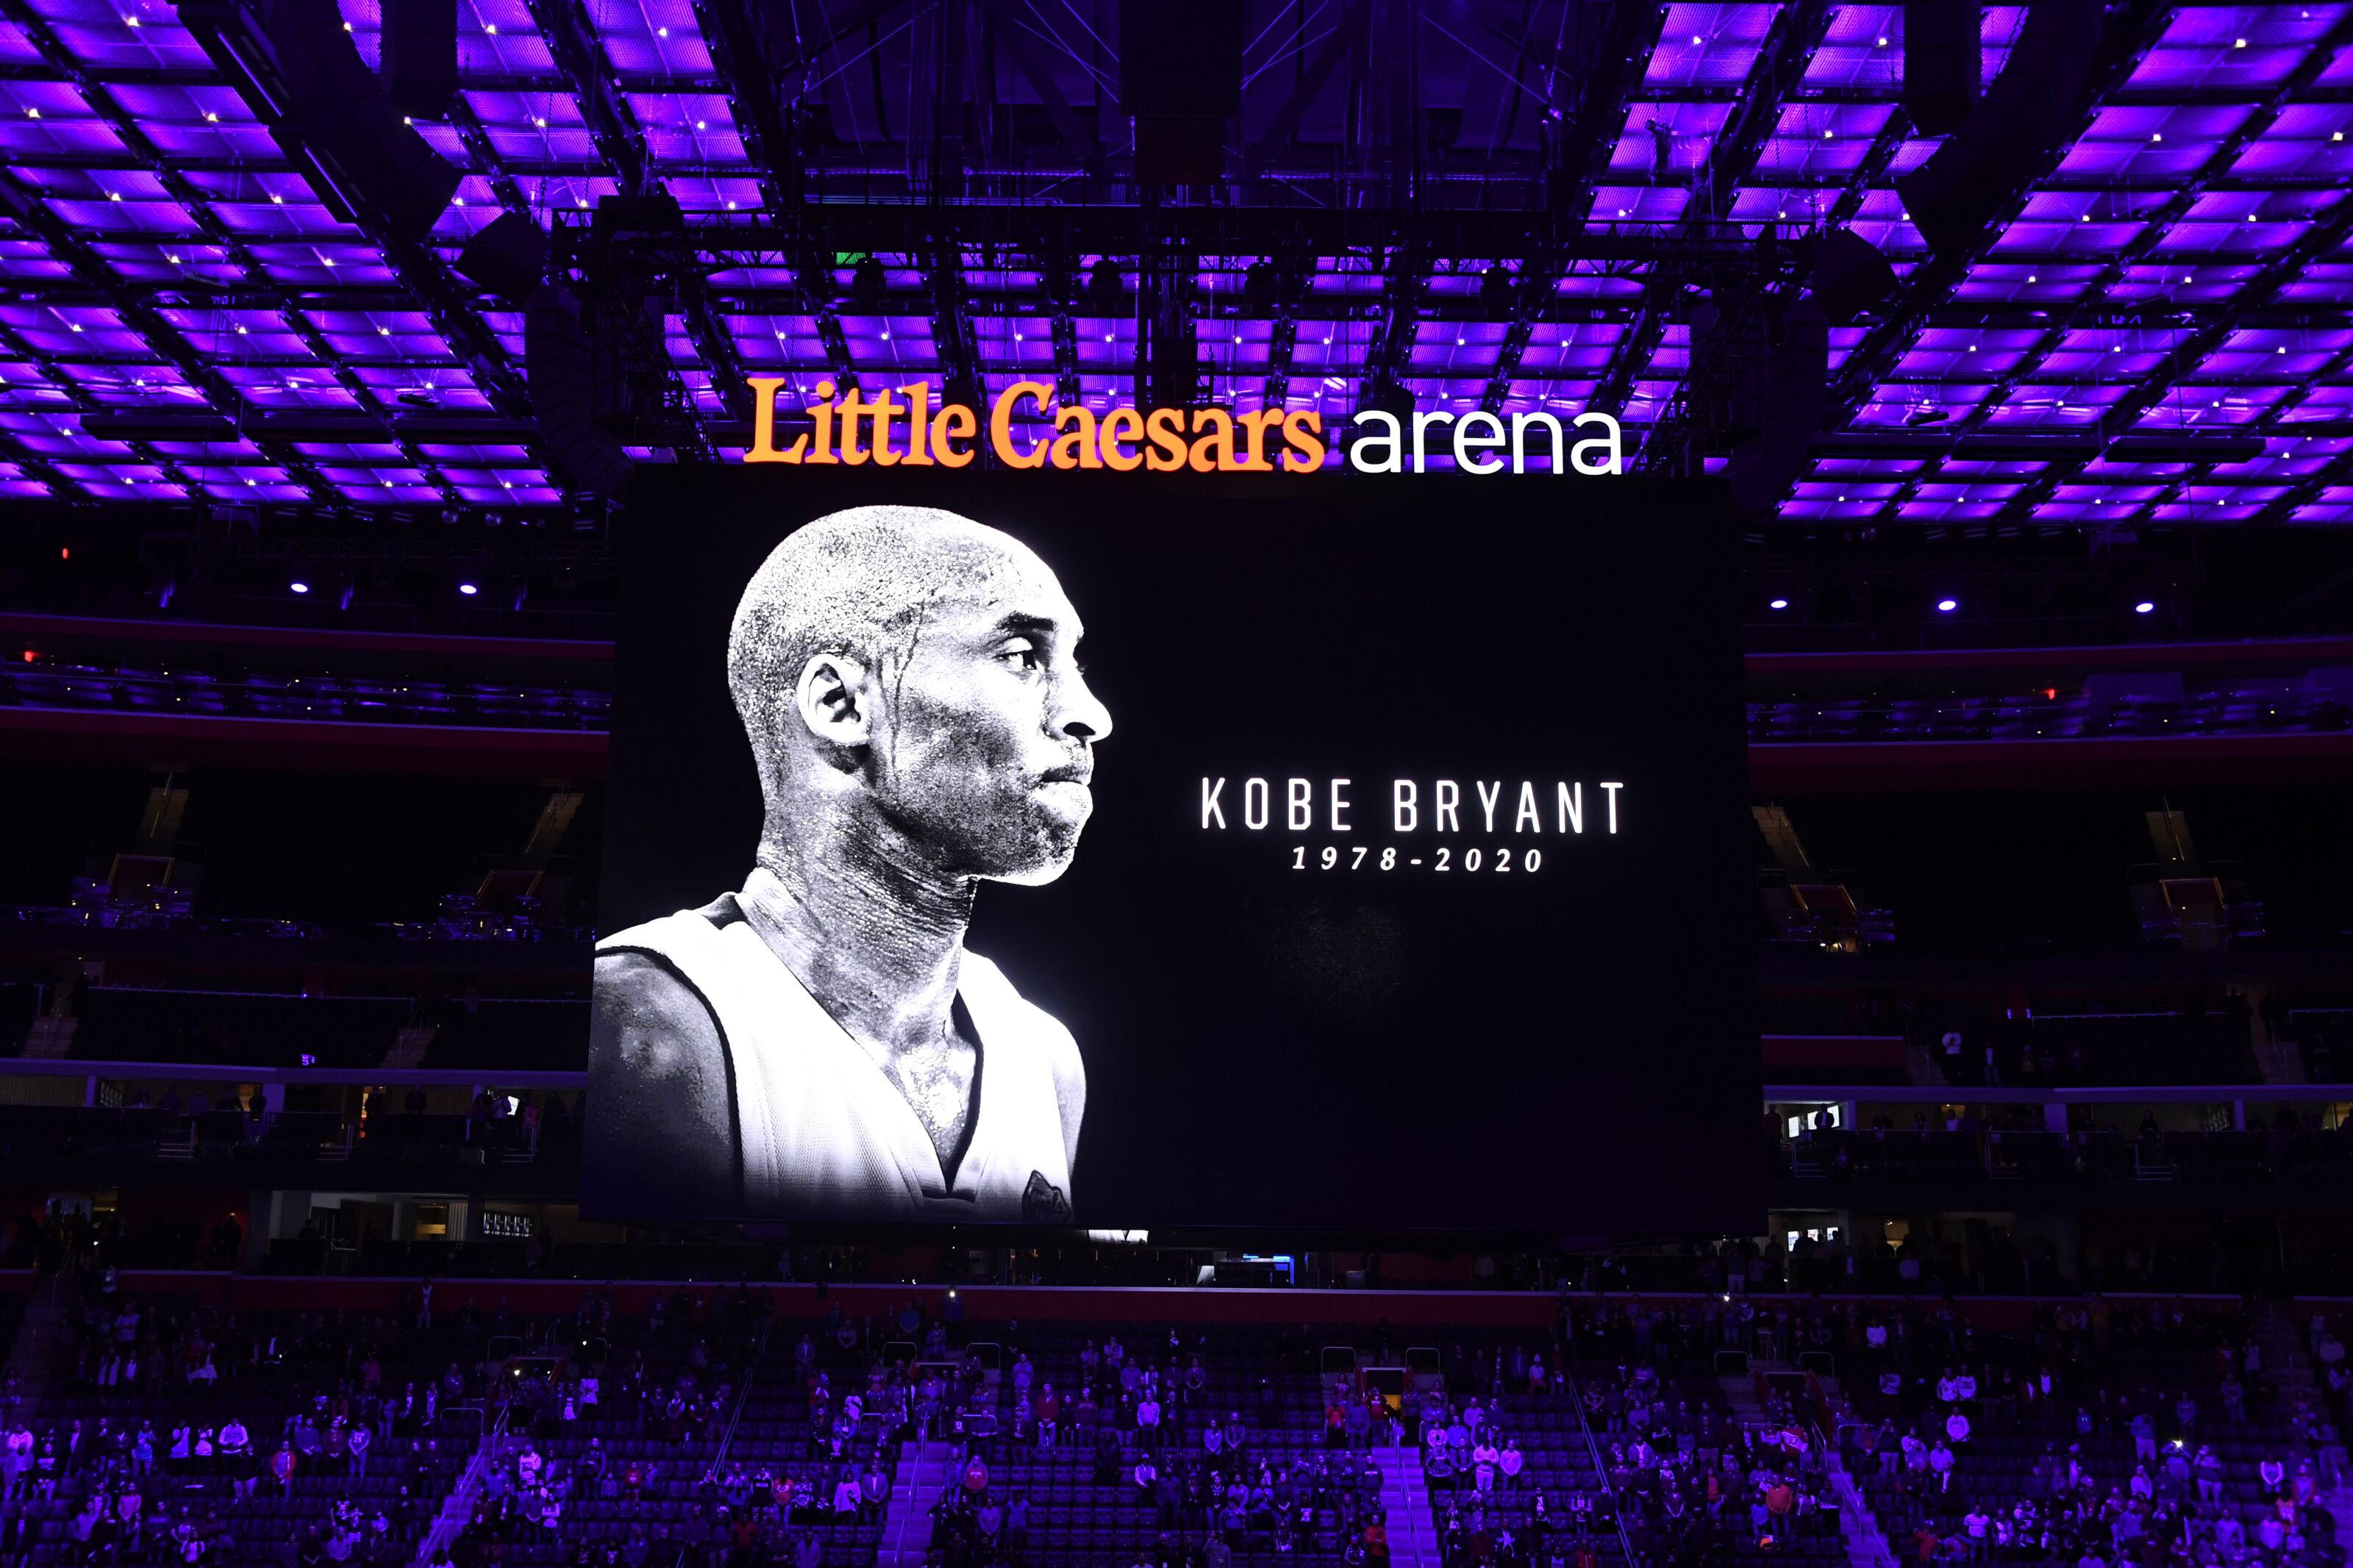 The Detroit Pistons pay tribute Kobe Bryant's legendary career